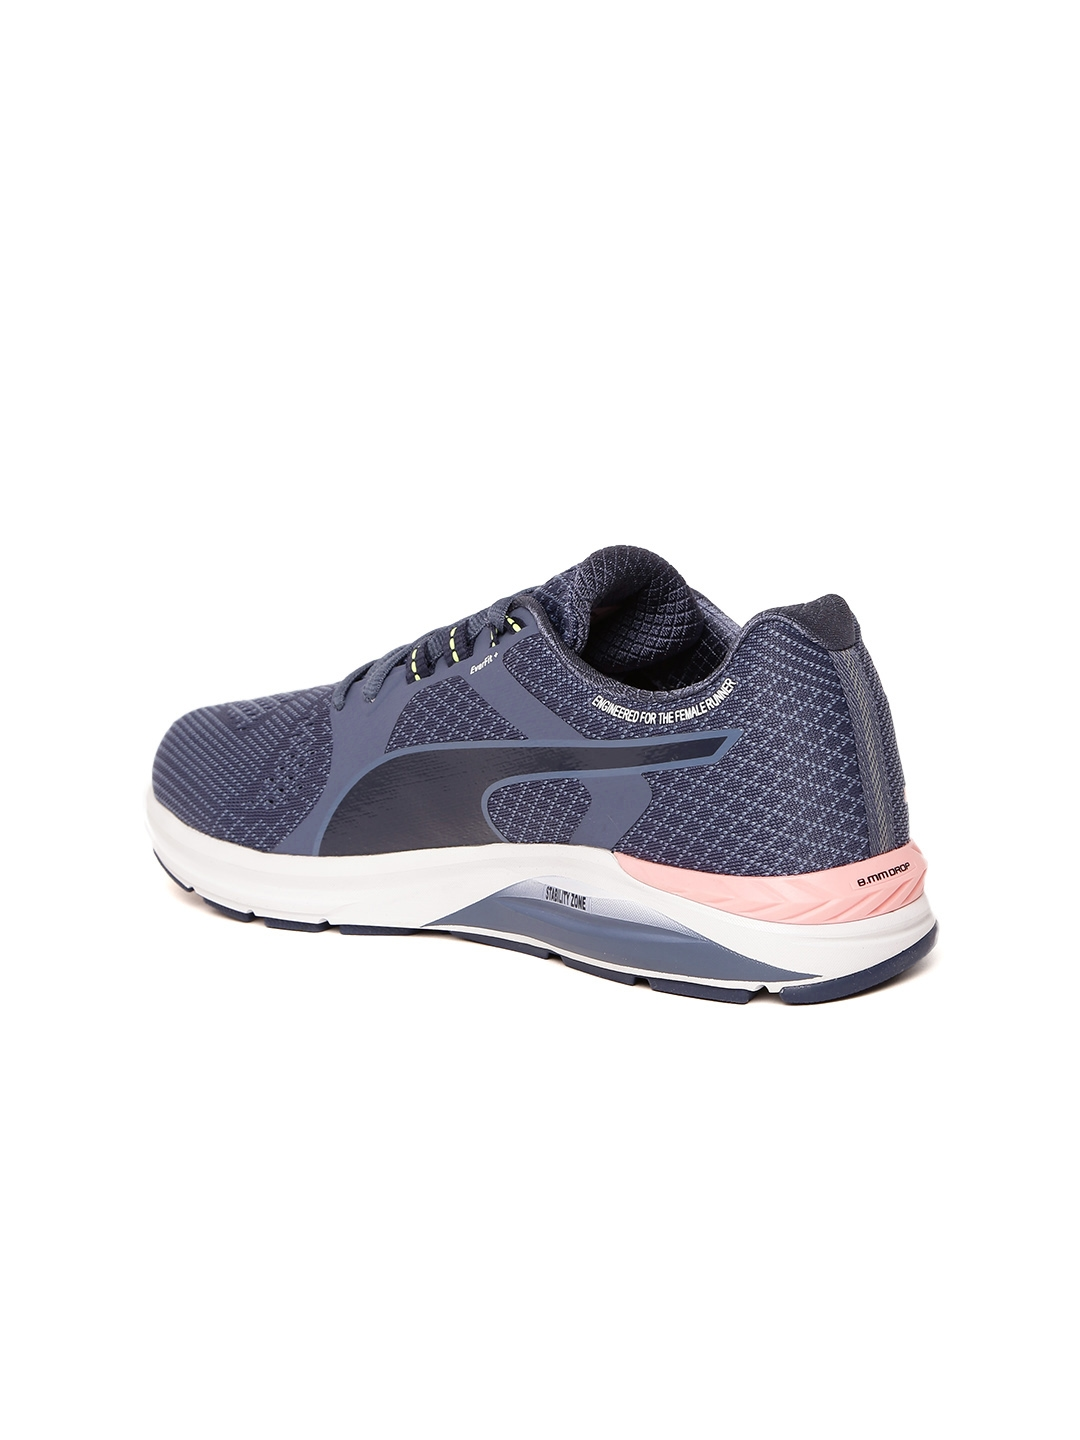 17d410f3970ff1 Buy Puma Men Blue Speed 600 S Ignite Running Shoes - Sports Shoes ...